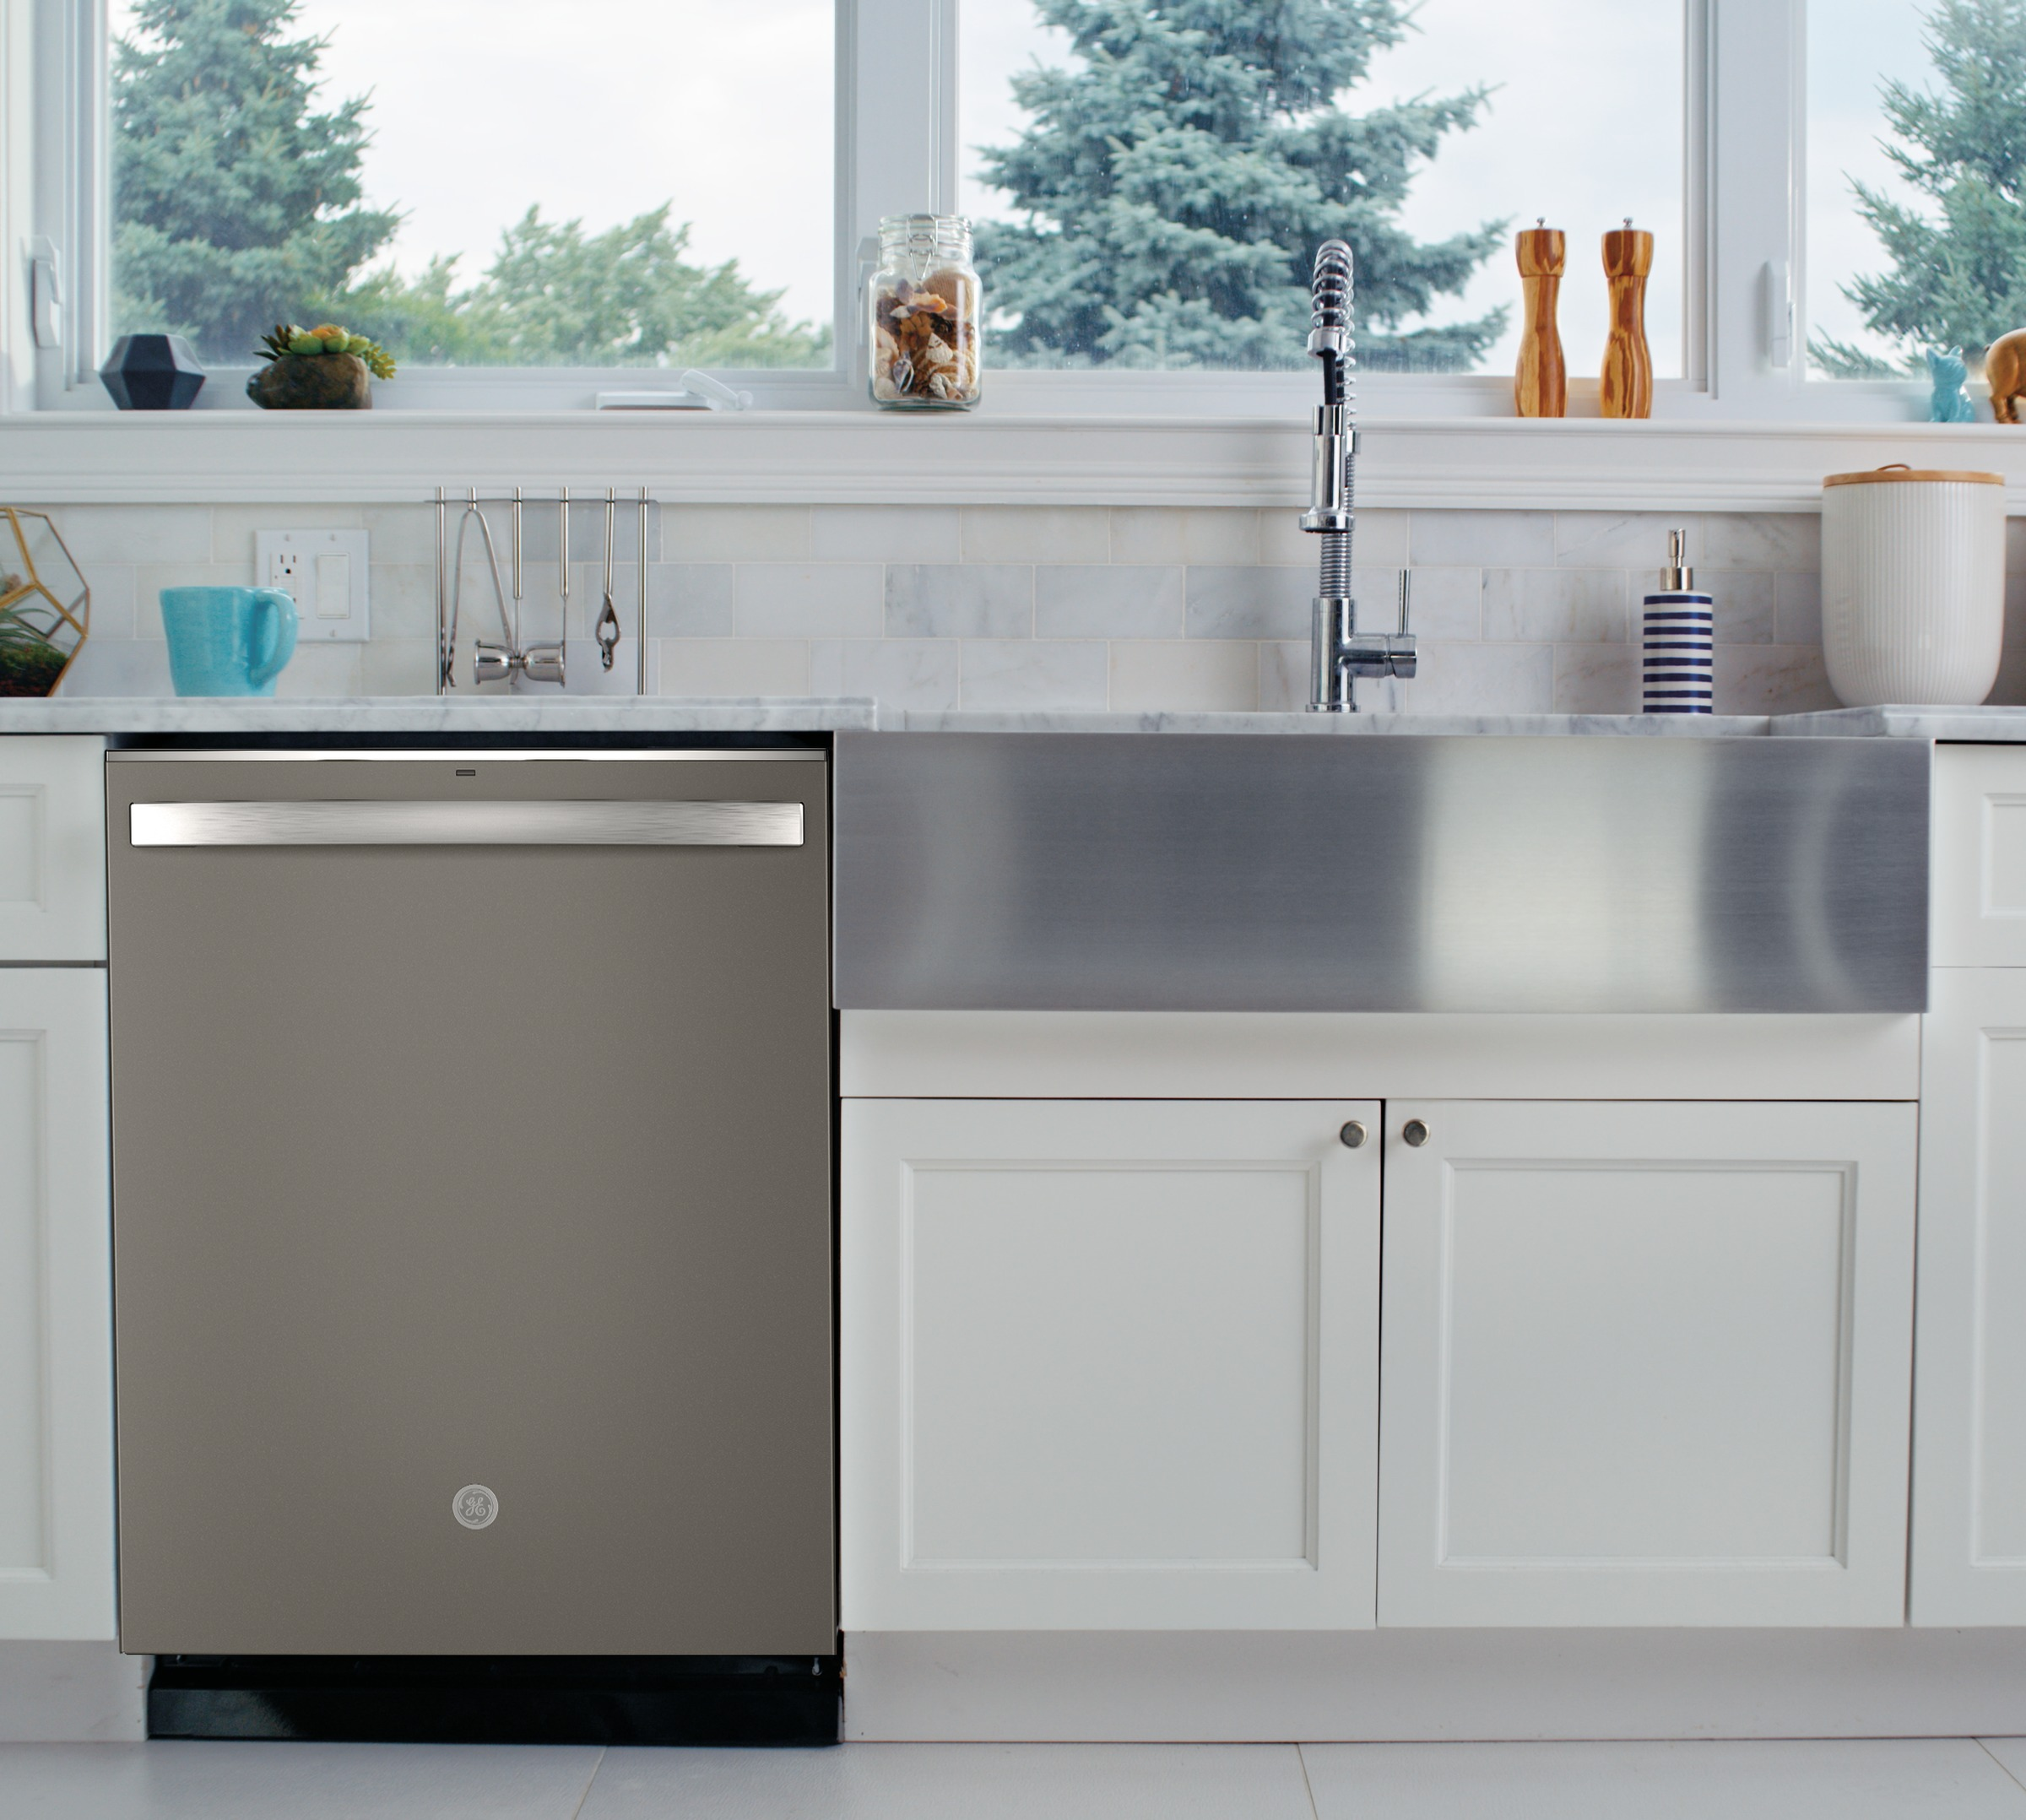 Model: GDT645SMNES | GE GE® Top Control with Stainless Steel Interior Dishwasher with Sanitize Cycle & Dry Boost with Fan Assist